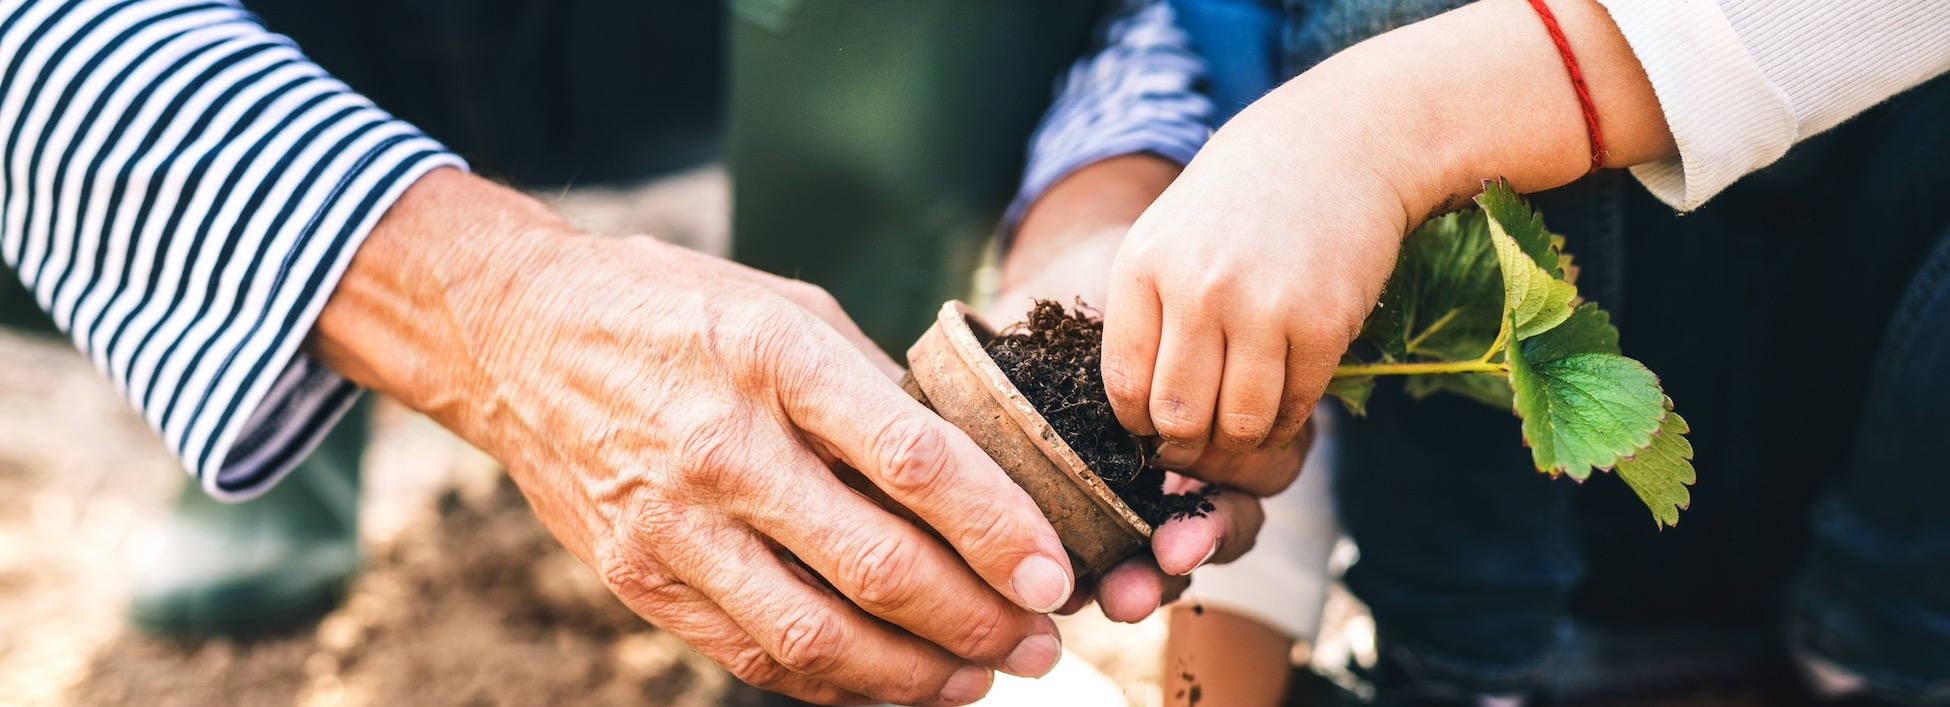 A closeup of an adult and a child set of hands planting.